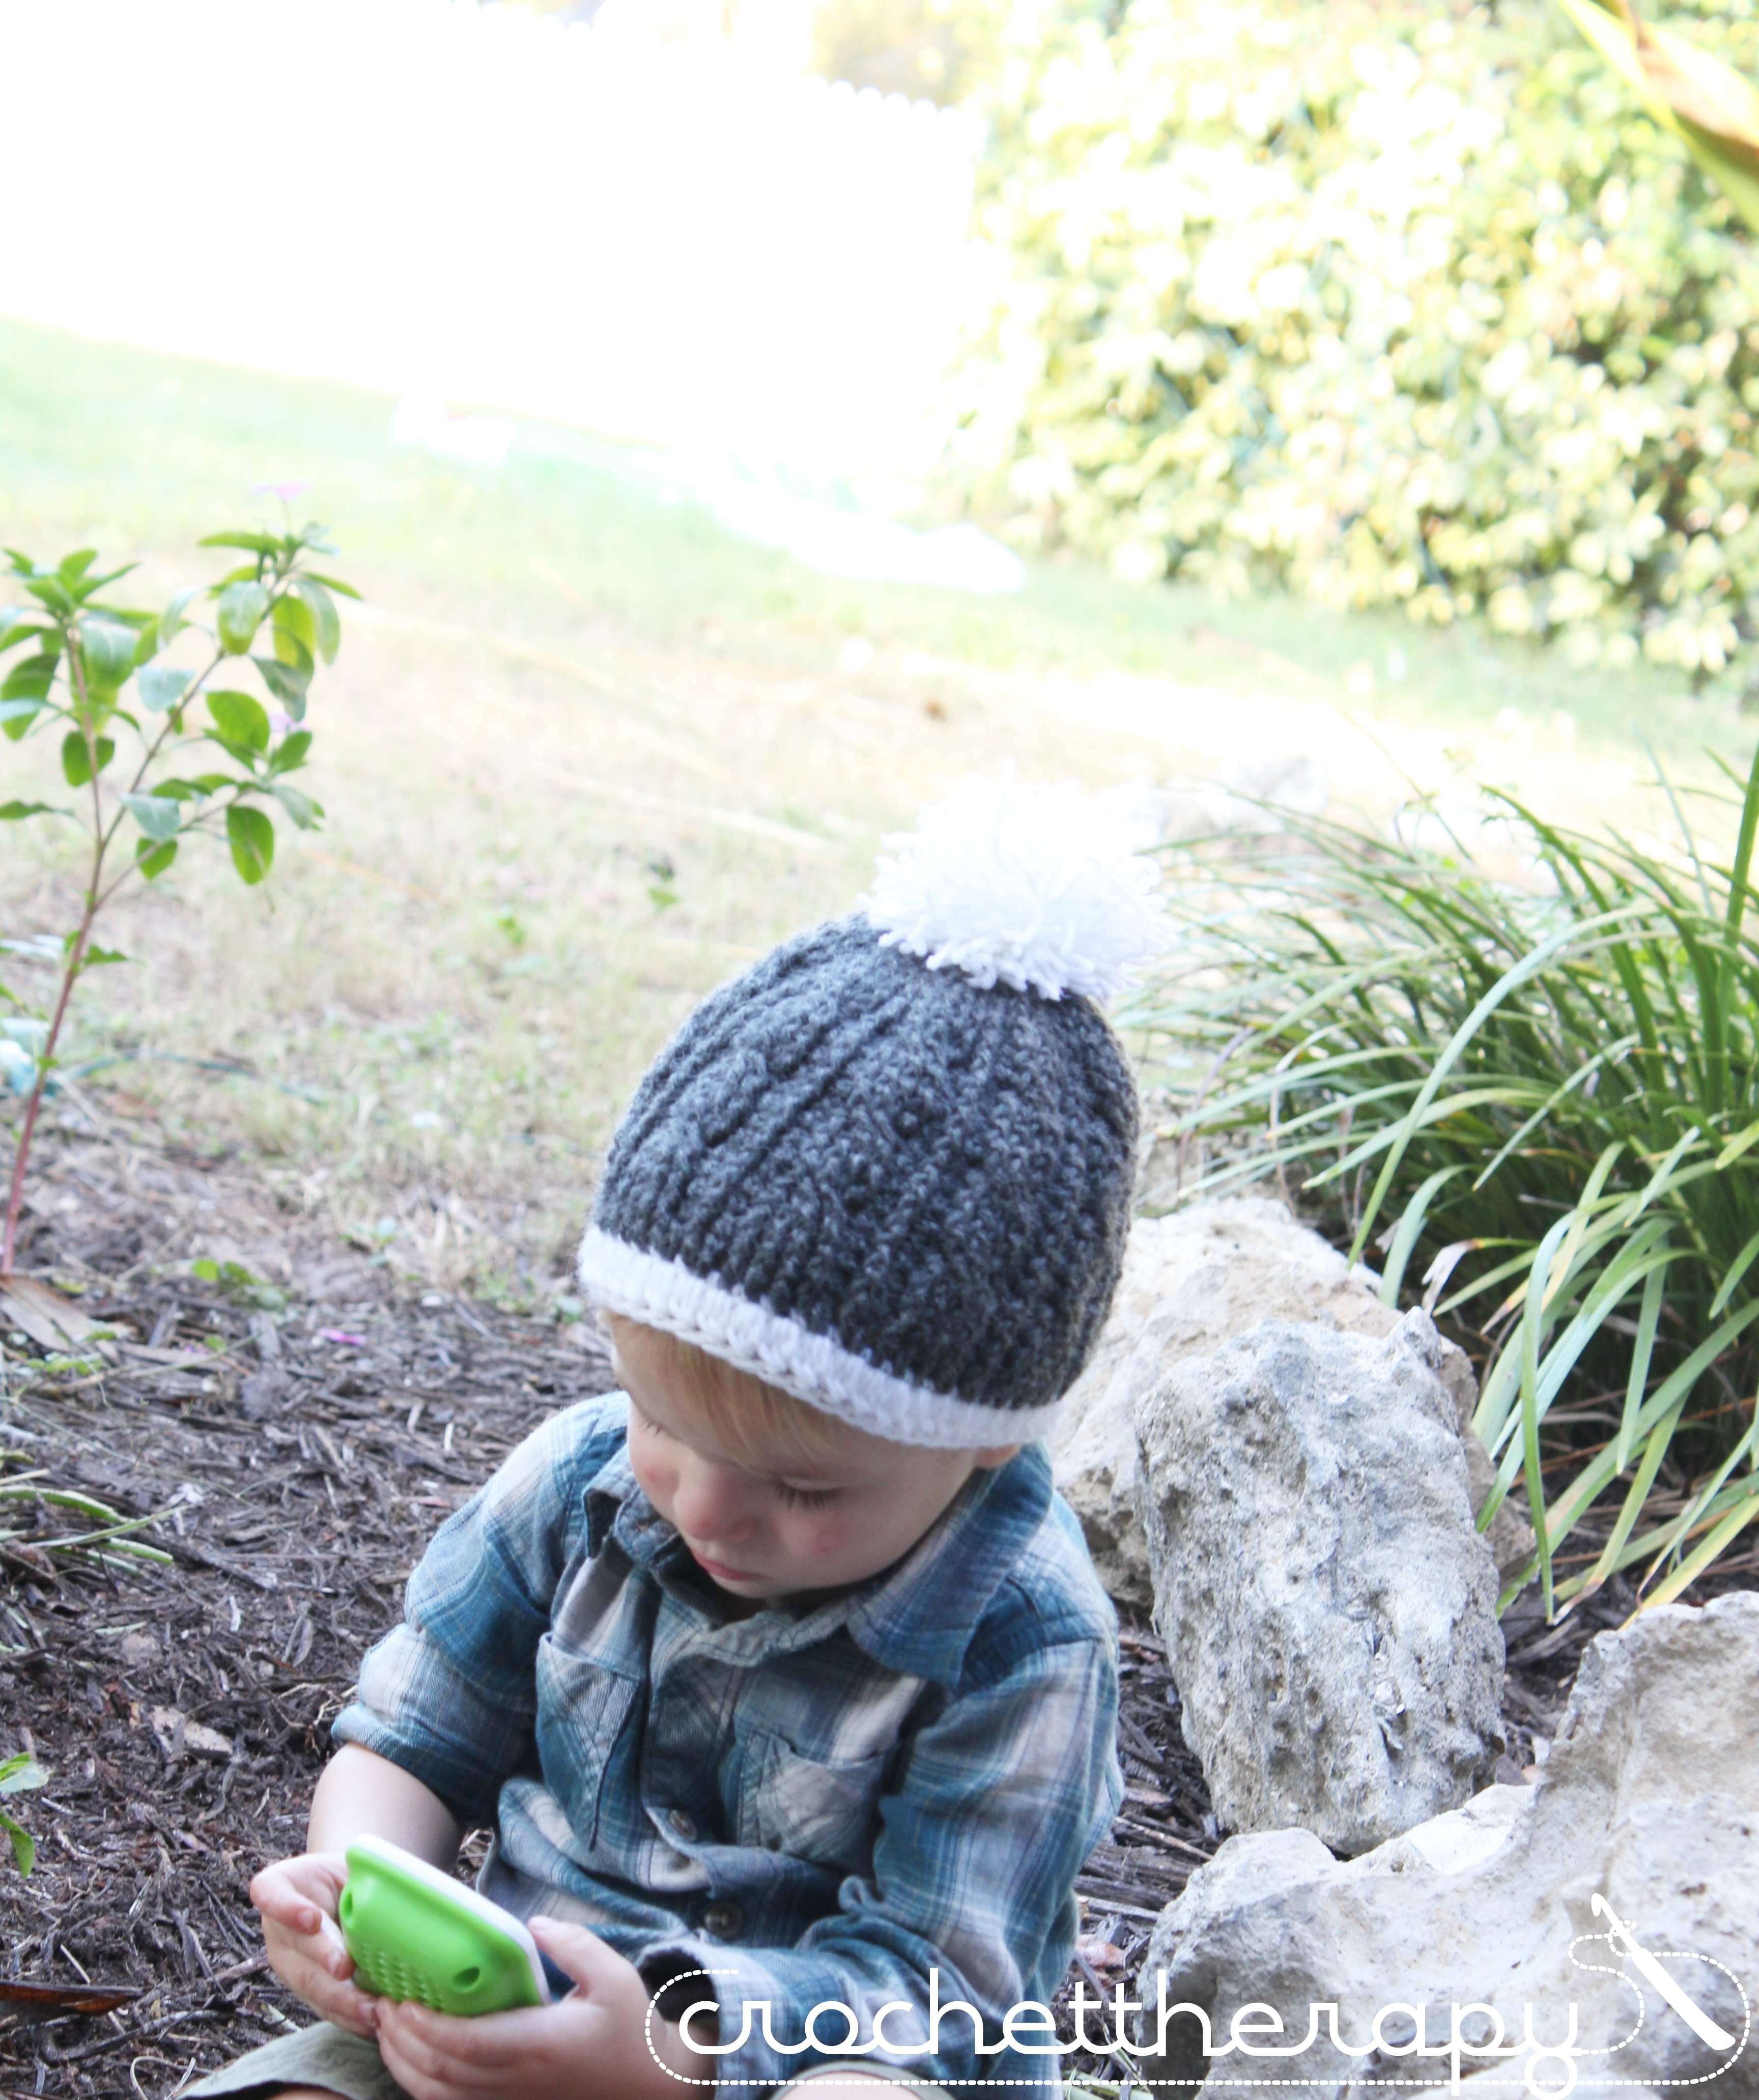 Cable Crochet hat pattern: free crochet cable hat pattern on the blog!